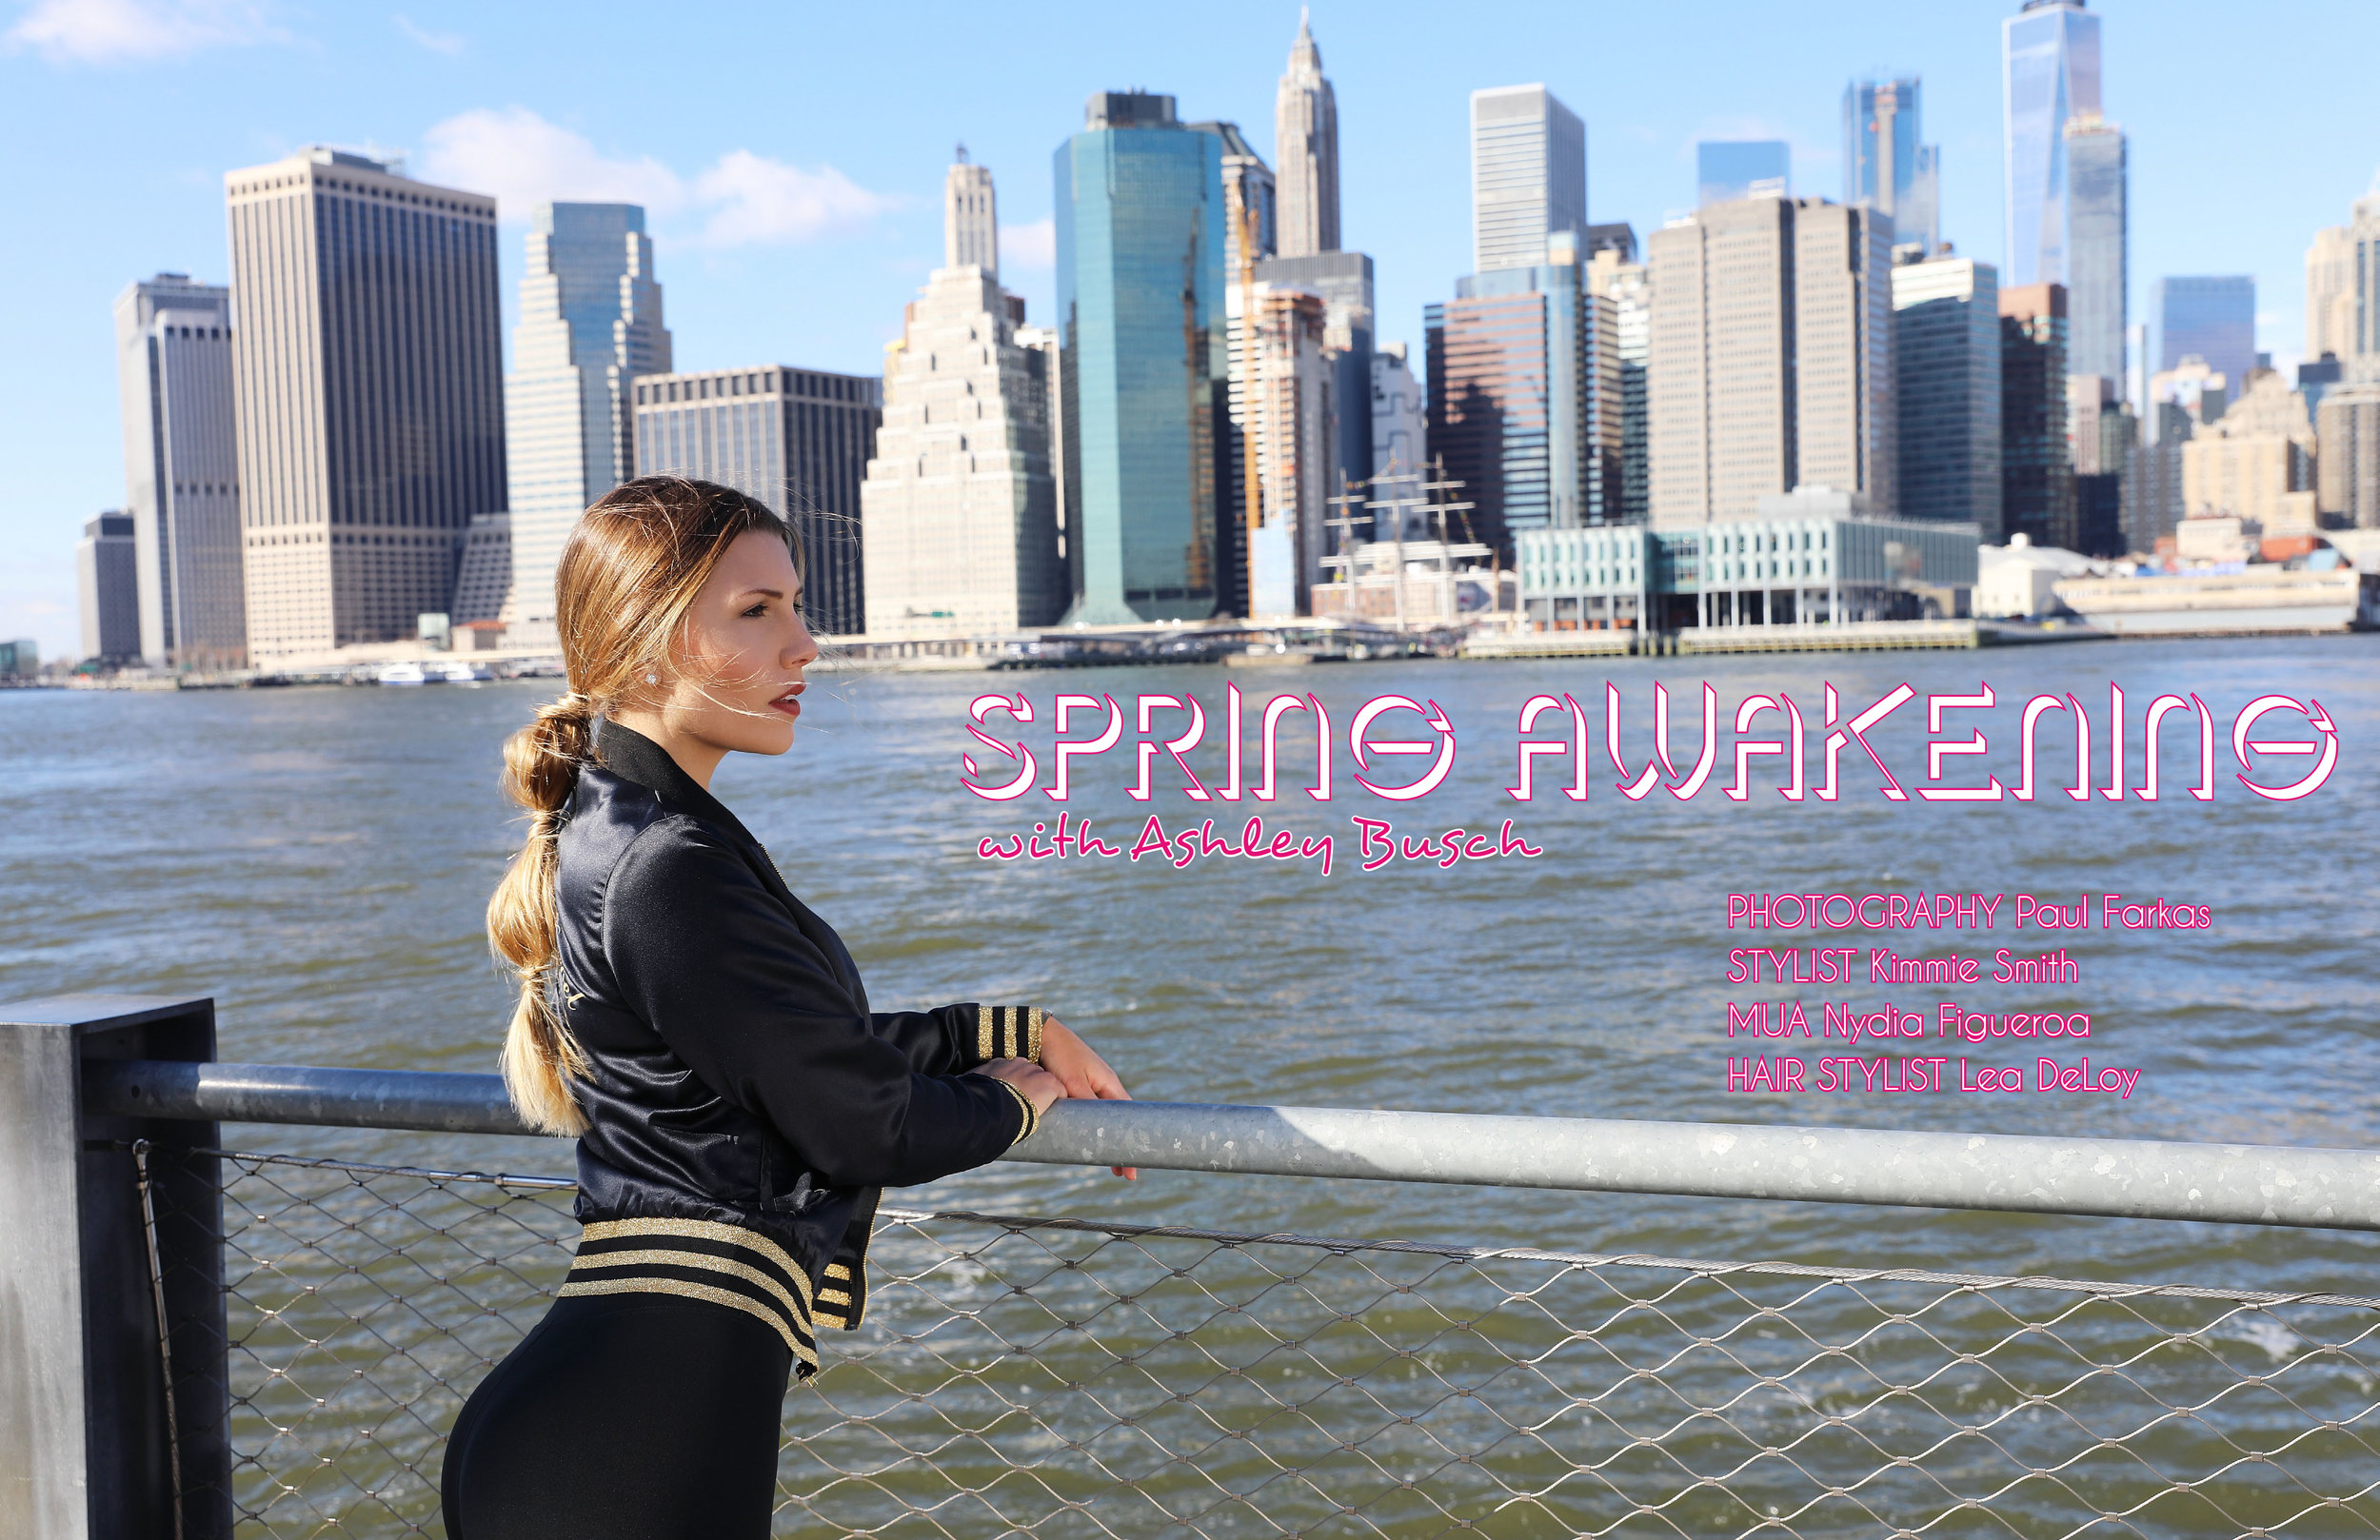 ATHLEISURE MAG MAR ISSUE WITH OUR CELEBRITY COVER, US POLO PLAYER Ashley Busch